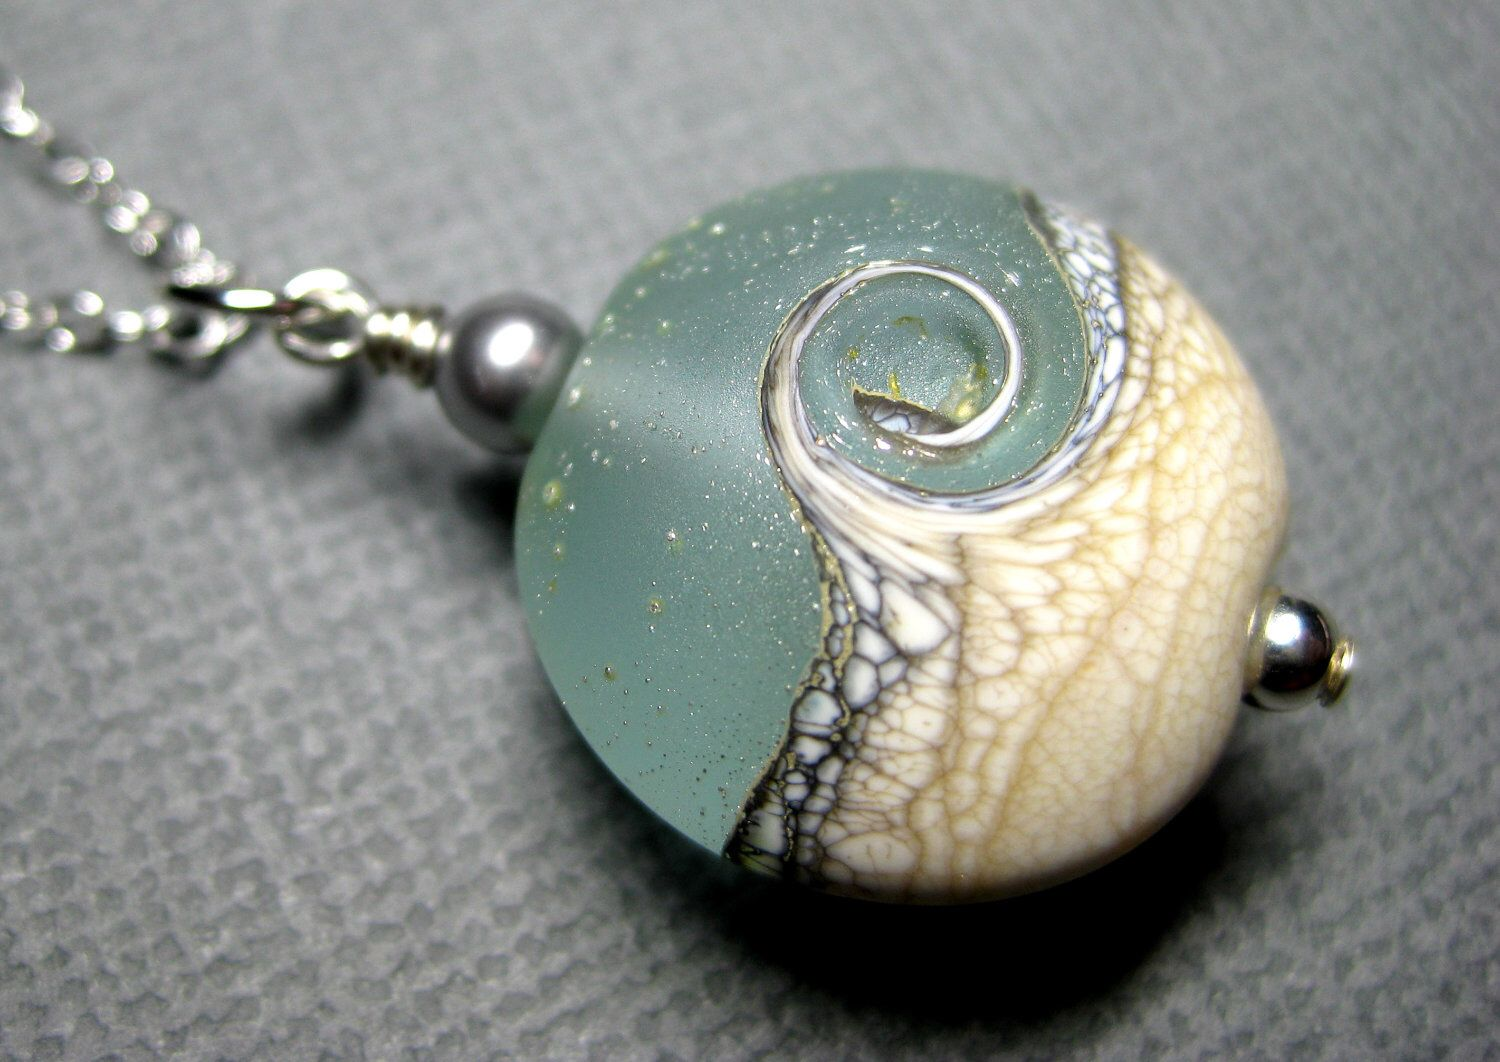 Ocean necklace, Ocean wave aqua pendant necklace, Lampwork necklace, Sterling silver, Handmade beach jewelry, Christmas gift, SALE by JewelrybyDorothy on Etsy https://www.etsy.com/listing/83901696/ocean-necklace-ocean-wave-aqua-pendant